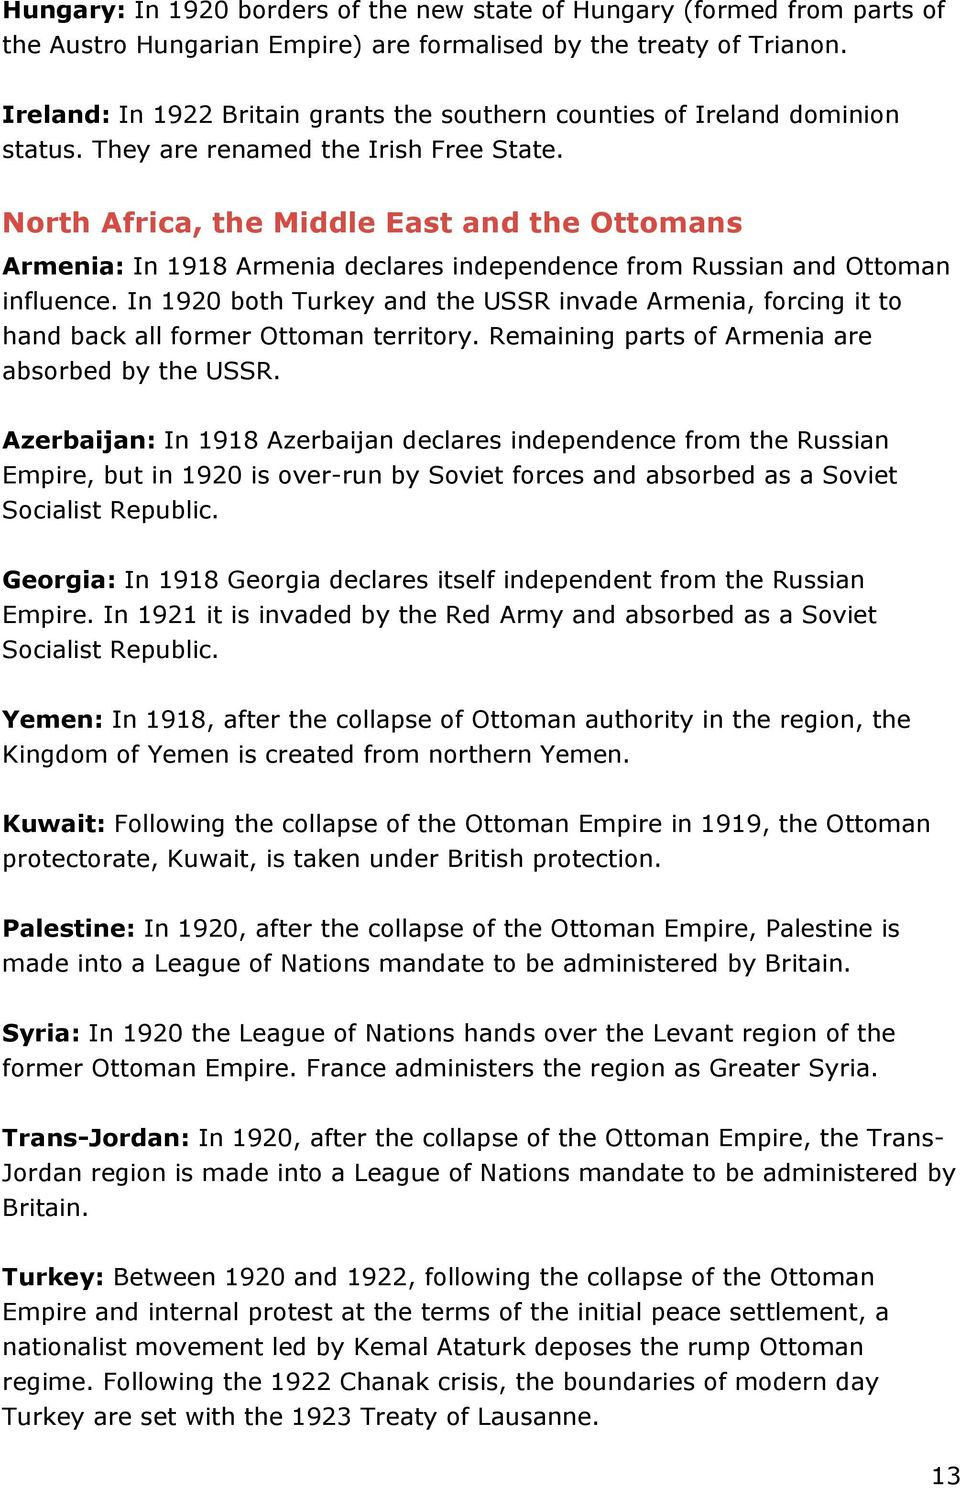 North Africa, the Middle East and the Ottomans Armenia: In 1918 Armenia declares independence from Russian and Ottoman influence.